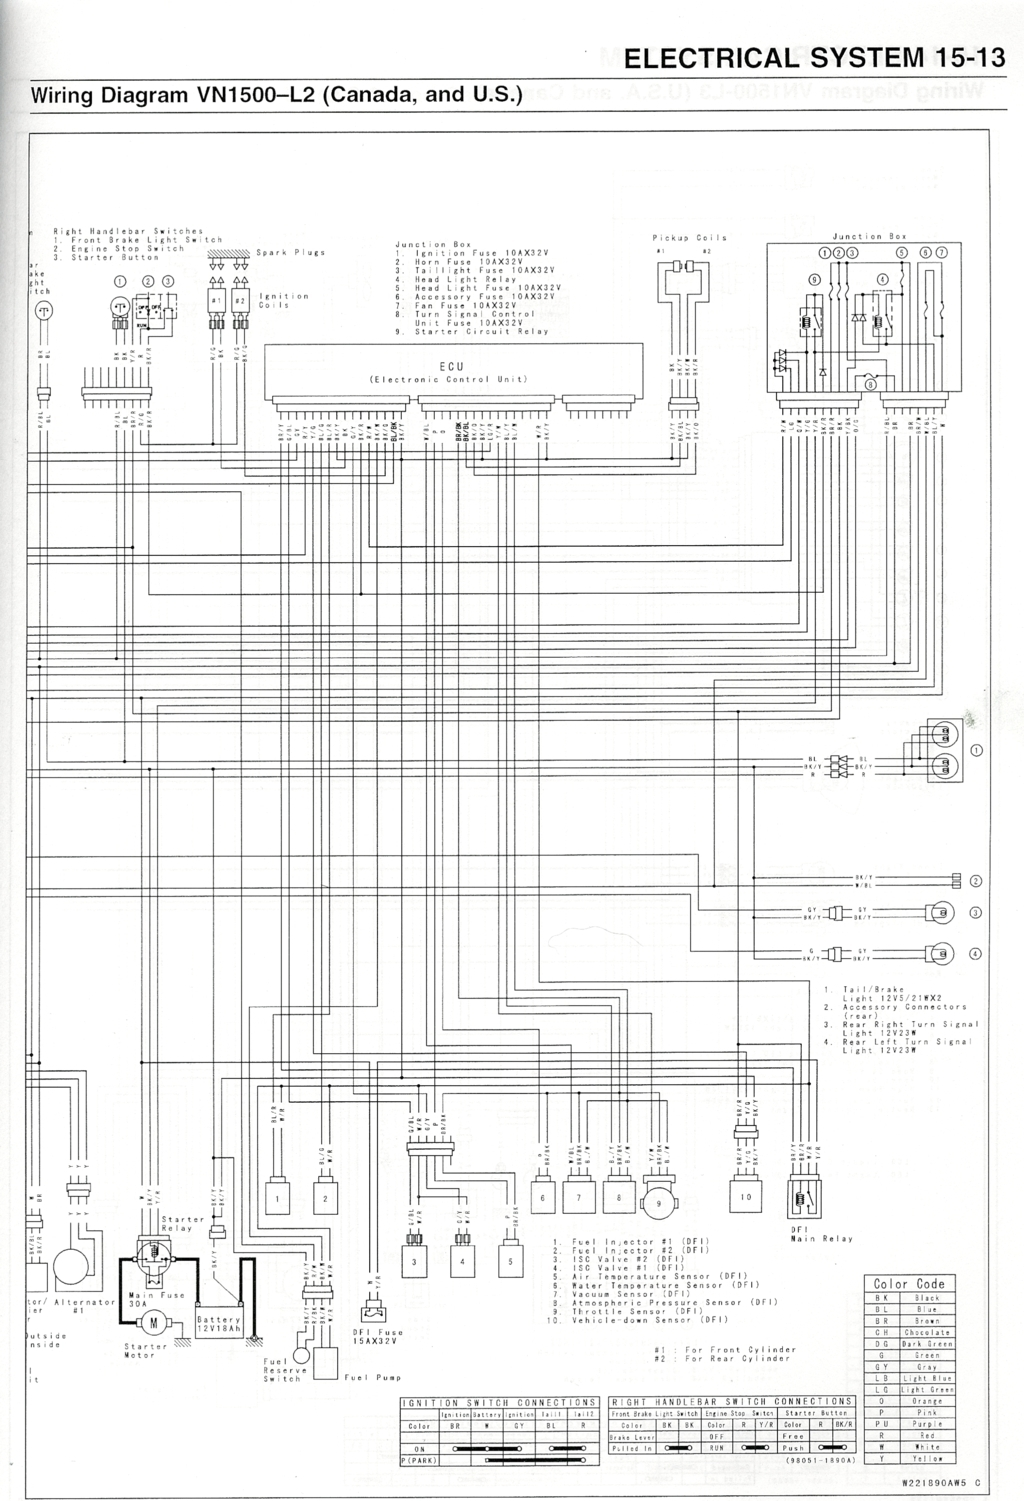 nomad_wiring_diagram_p2 vulcan wiring diagrams gadget's fixit page Kawasaki Vulcan 1500 Wiring Diagram at gsmx.co